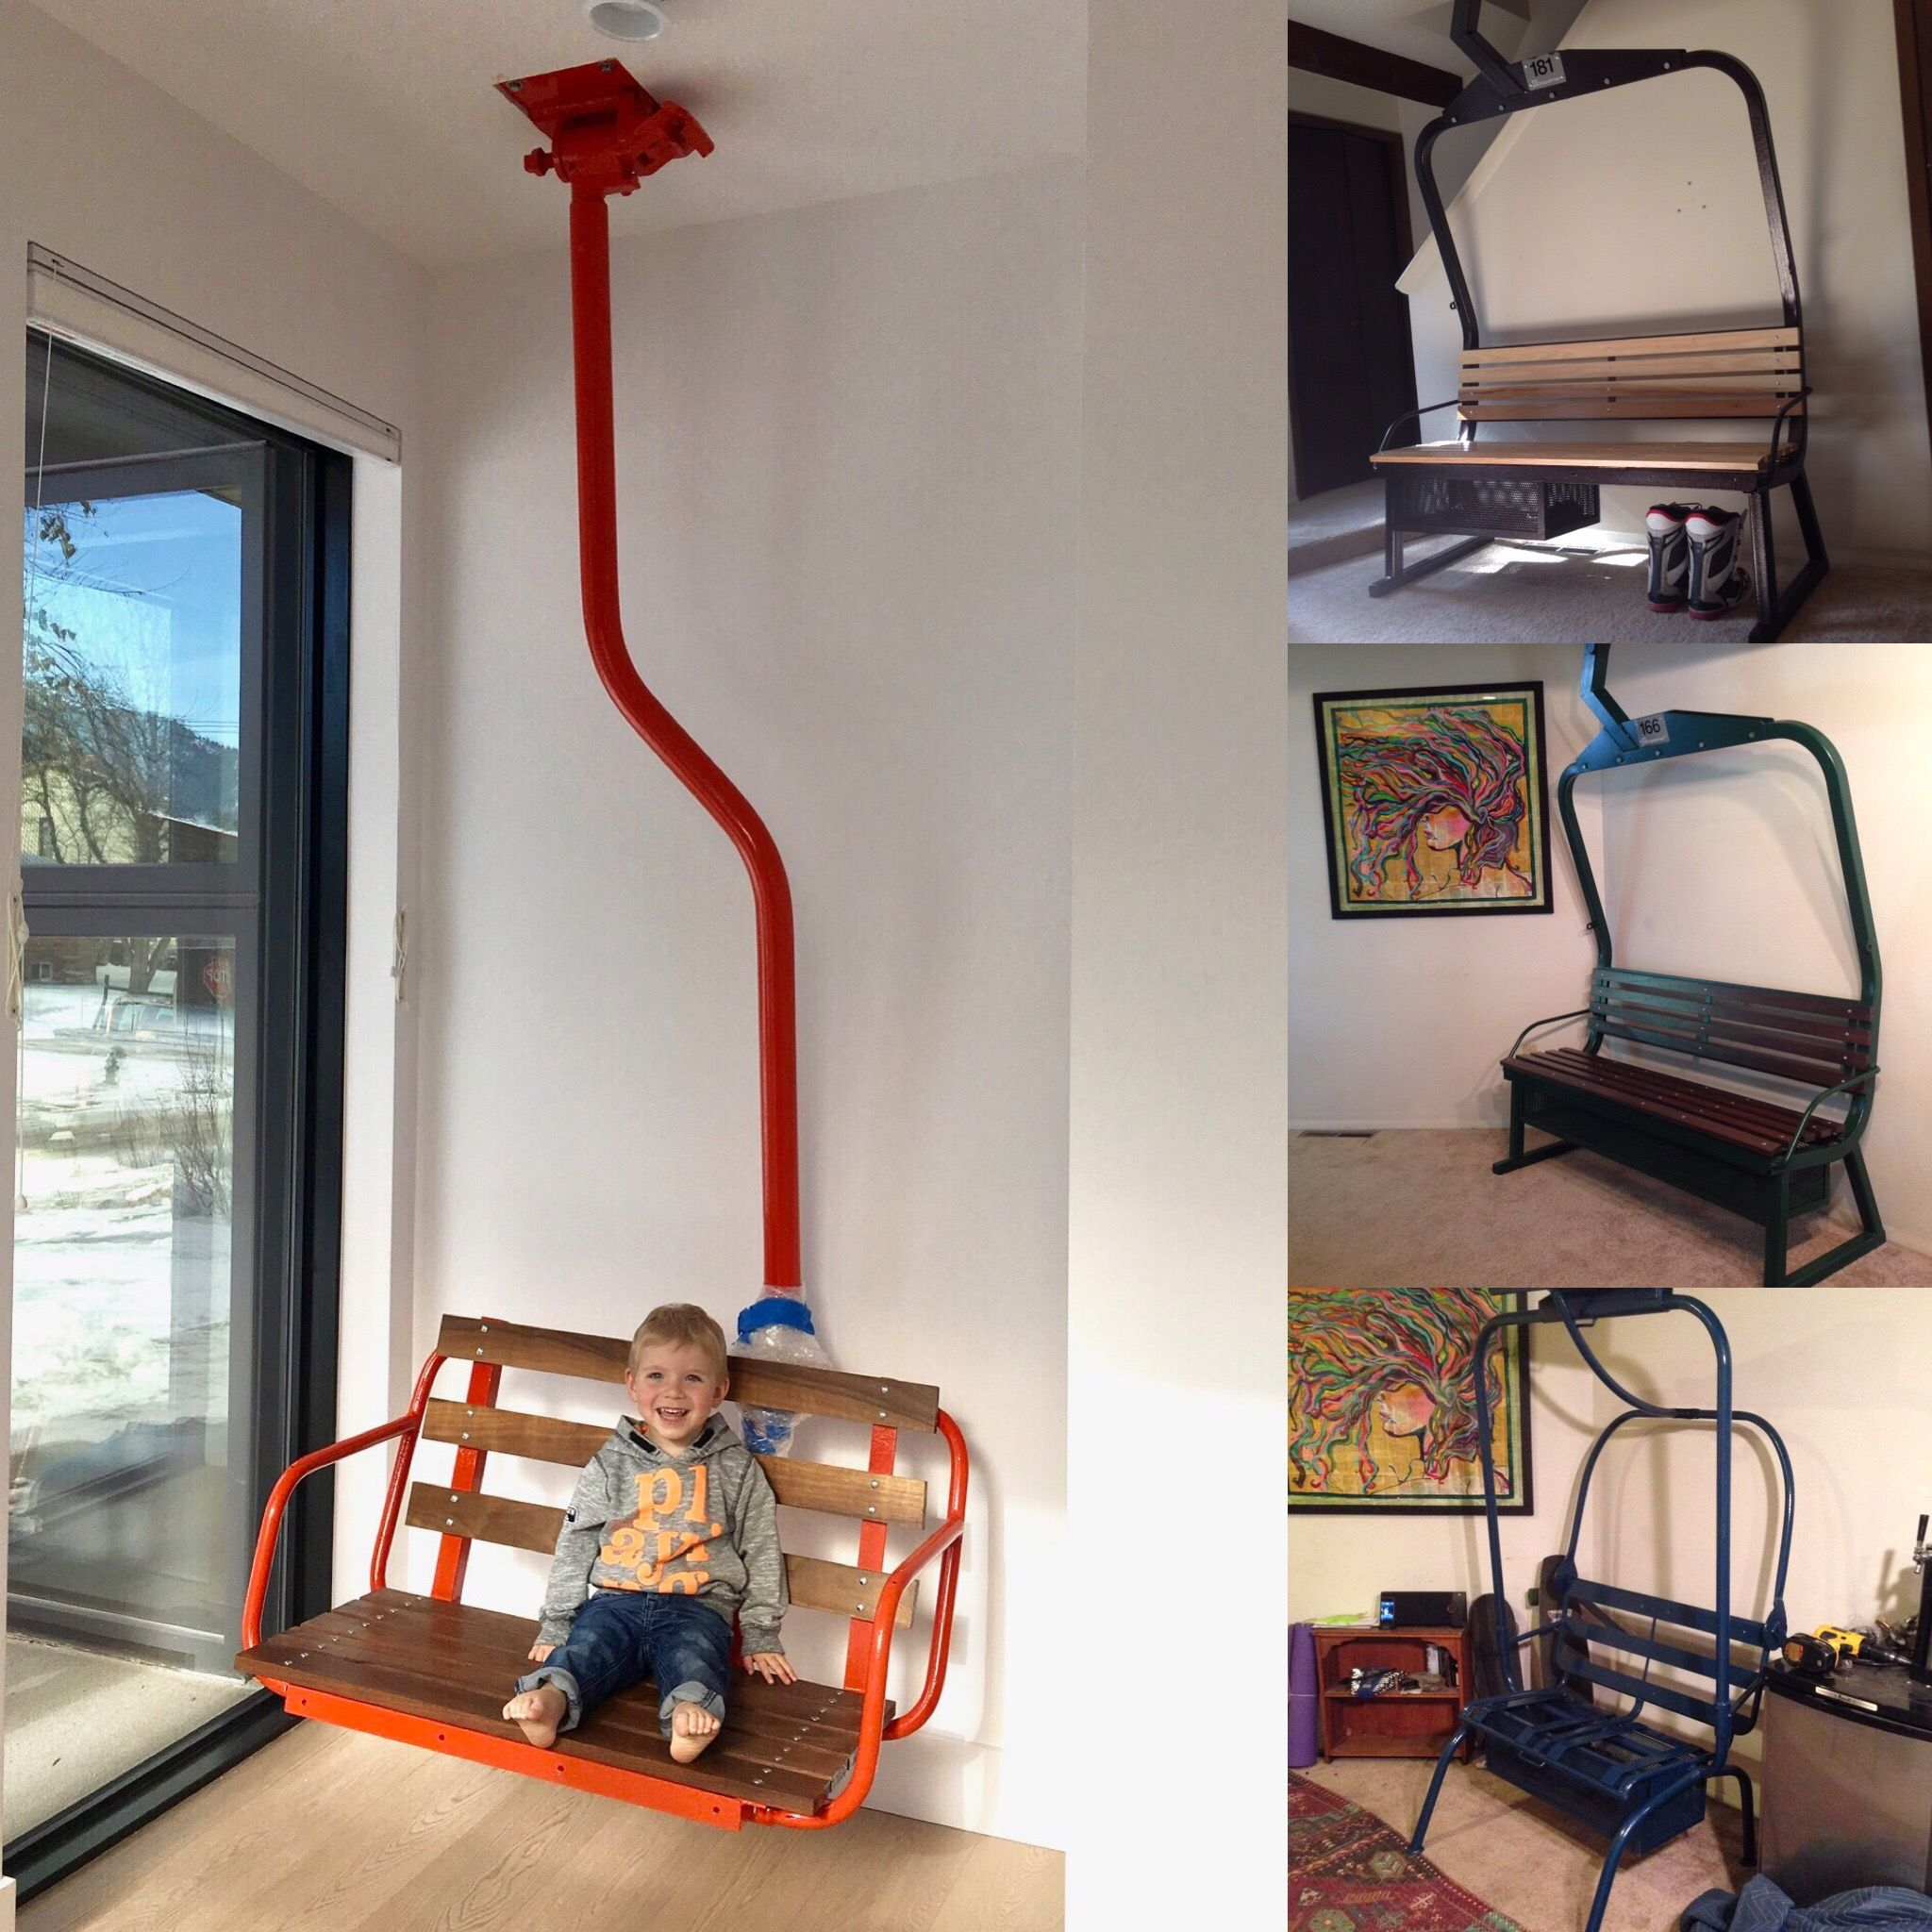 Superior Refinished Ski Lift Chairs By Last Chair Customs Of Boulder, CO